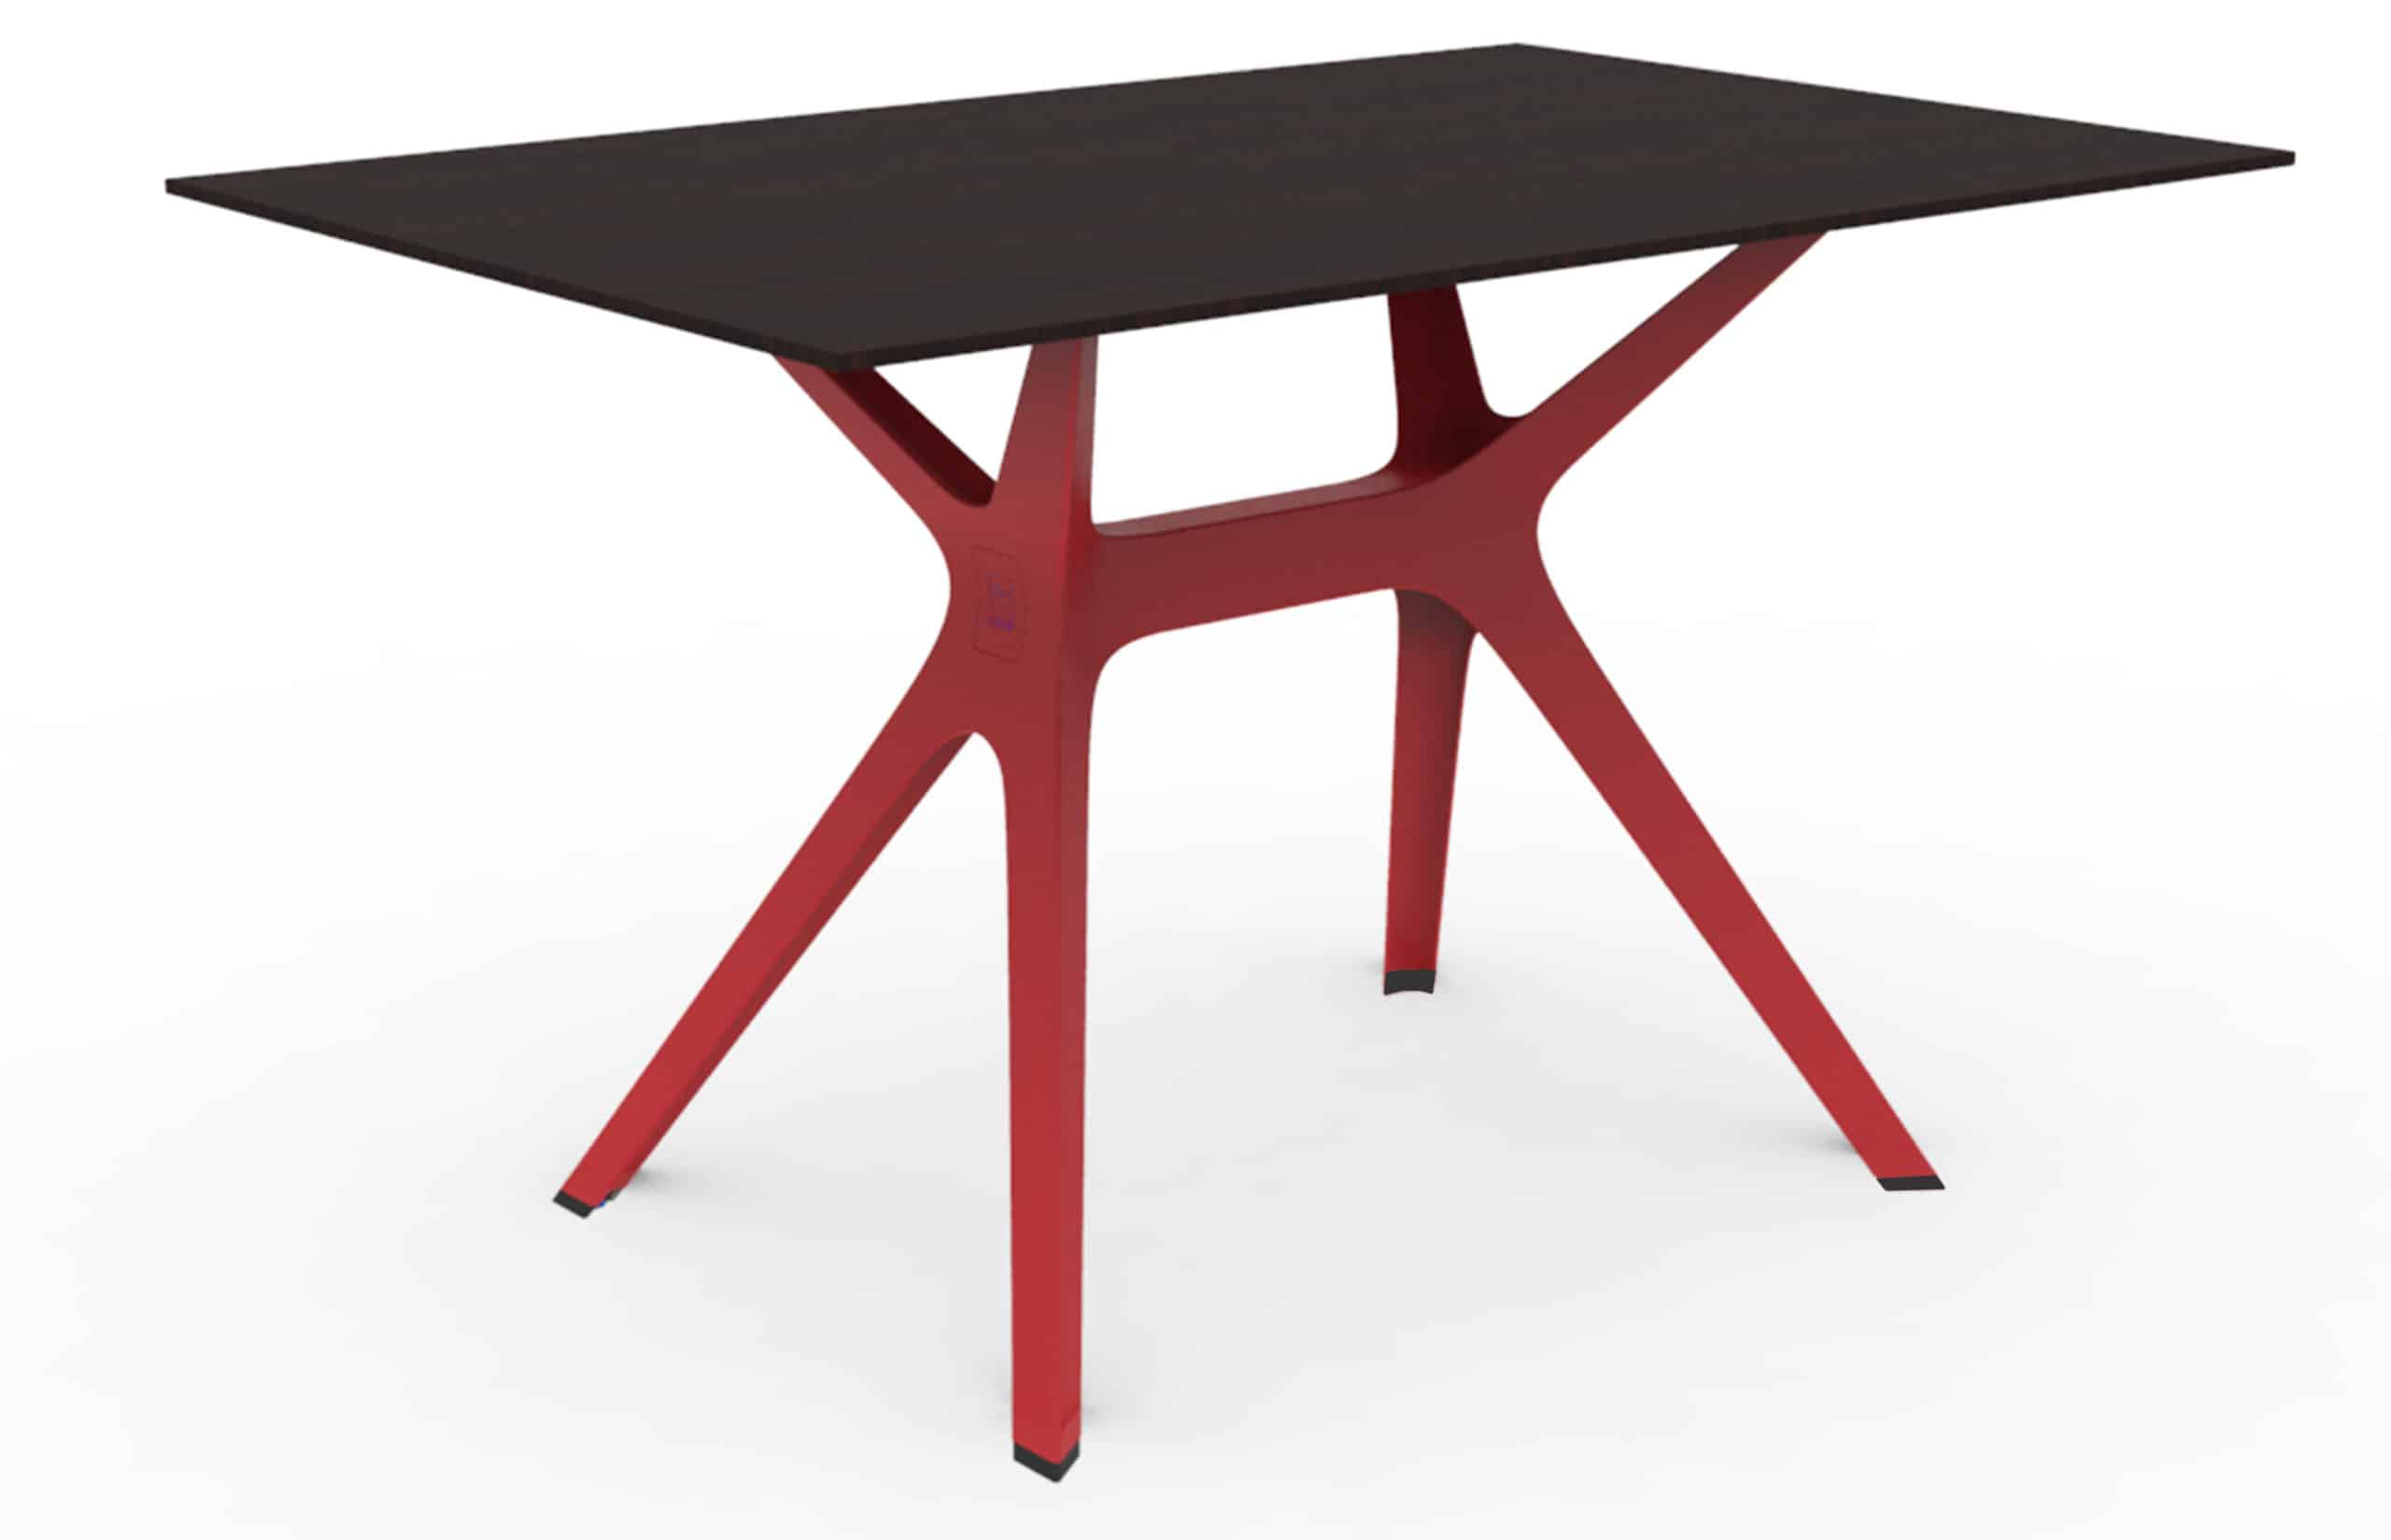 <p>Outdoor Furniture Contemporary Collection – Lima Commercial Dining Table.</p> <p> </p> <p>Table for indoor and outdoor use available with a variety of tabletops. Adaptable to any environment being designed by architects. Capturing essential features such as elegance lightness, functionality, ergonomics and care for the environment.</p>